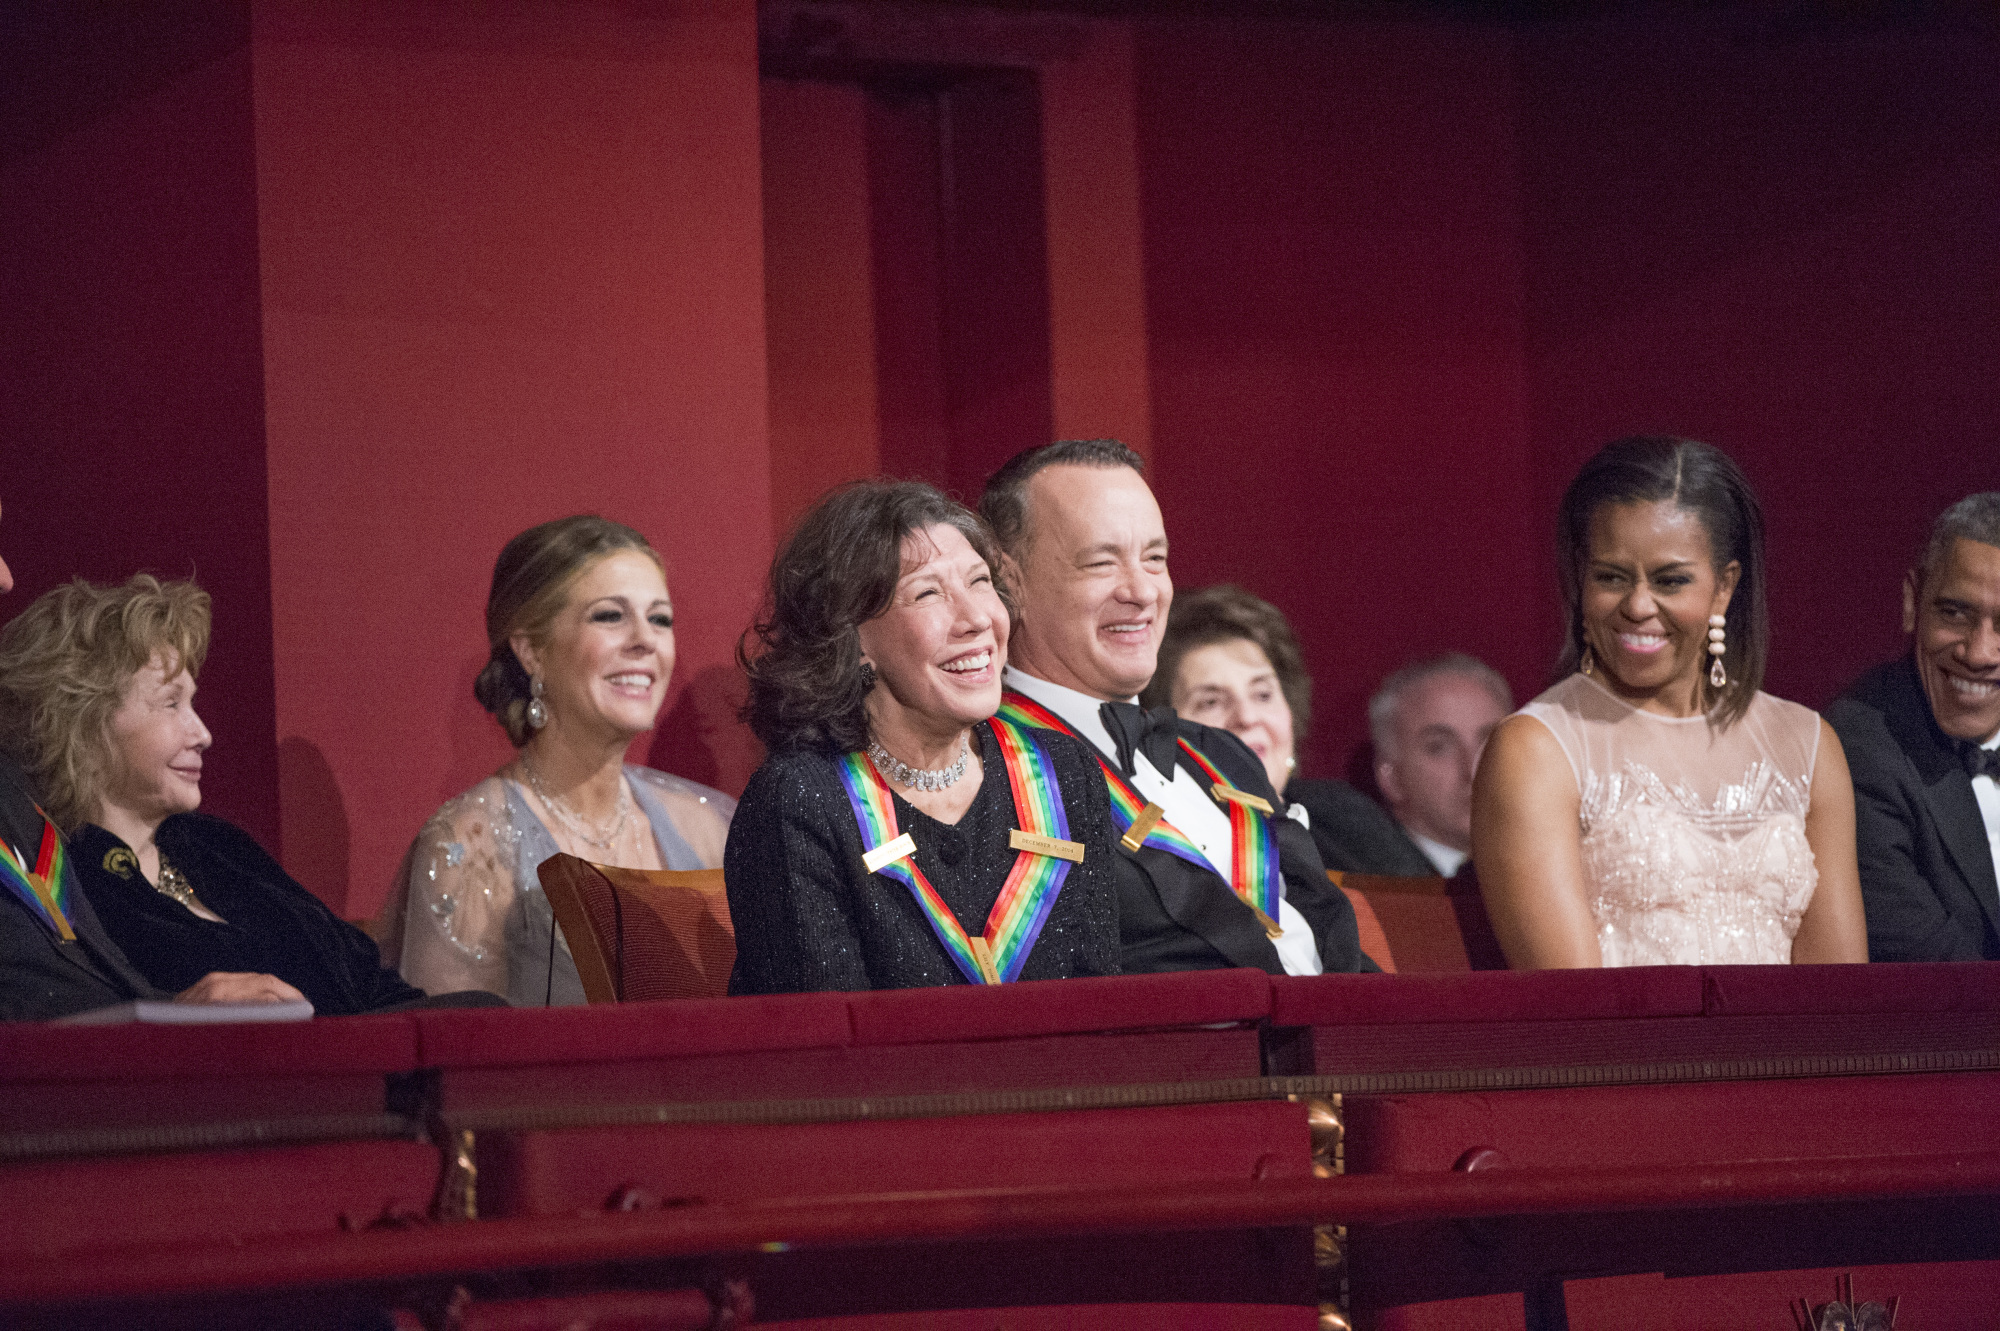 Jane Wagner, Rita Wilson, Lily Tomlin, Tom Hanks, First Lady Michelle Obama, and President Barack Obama